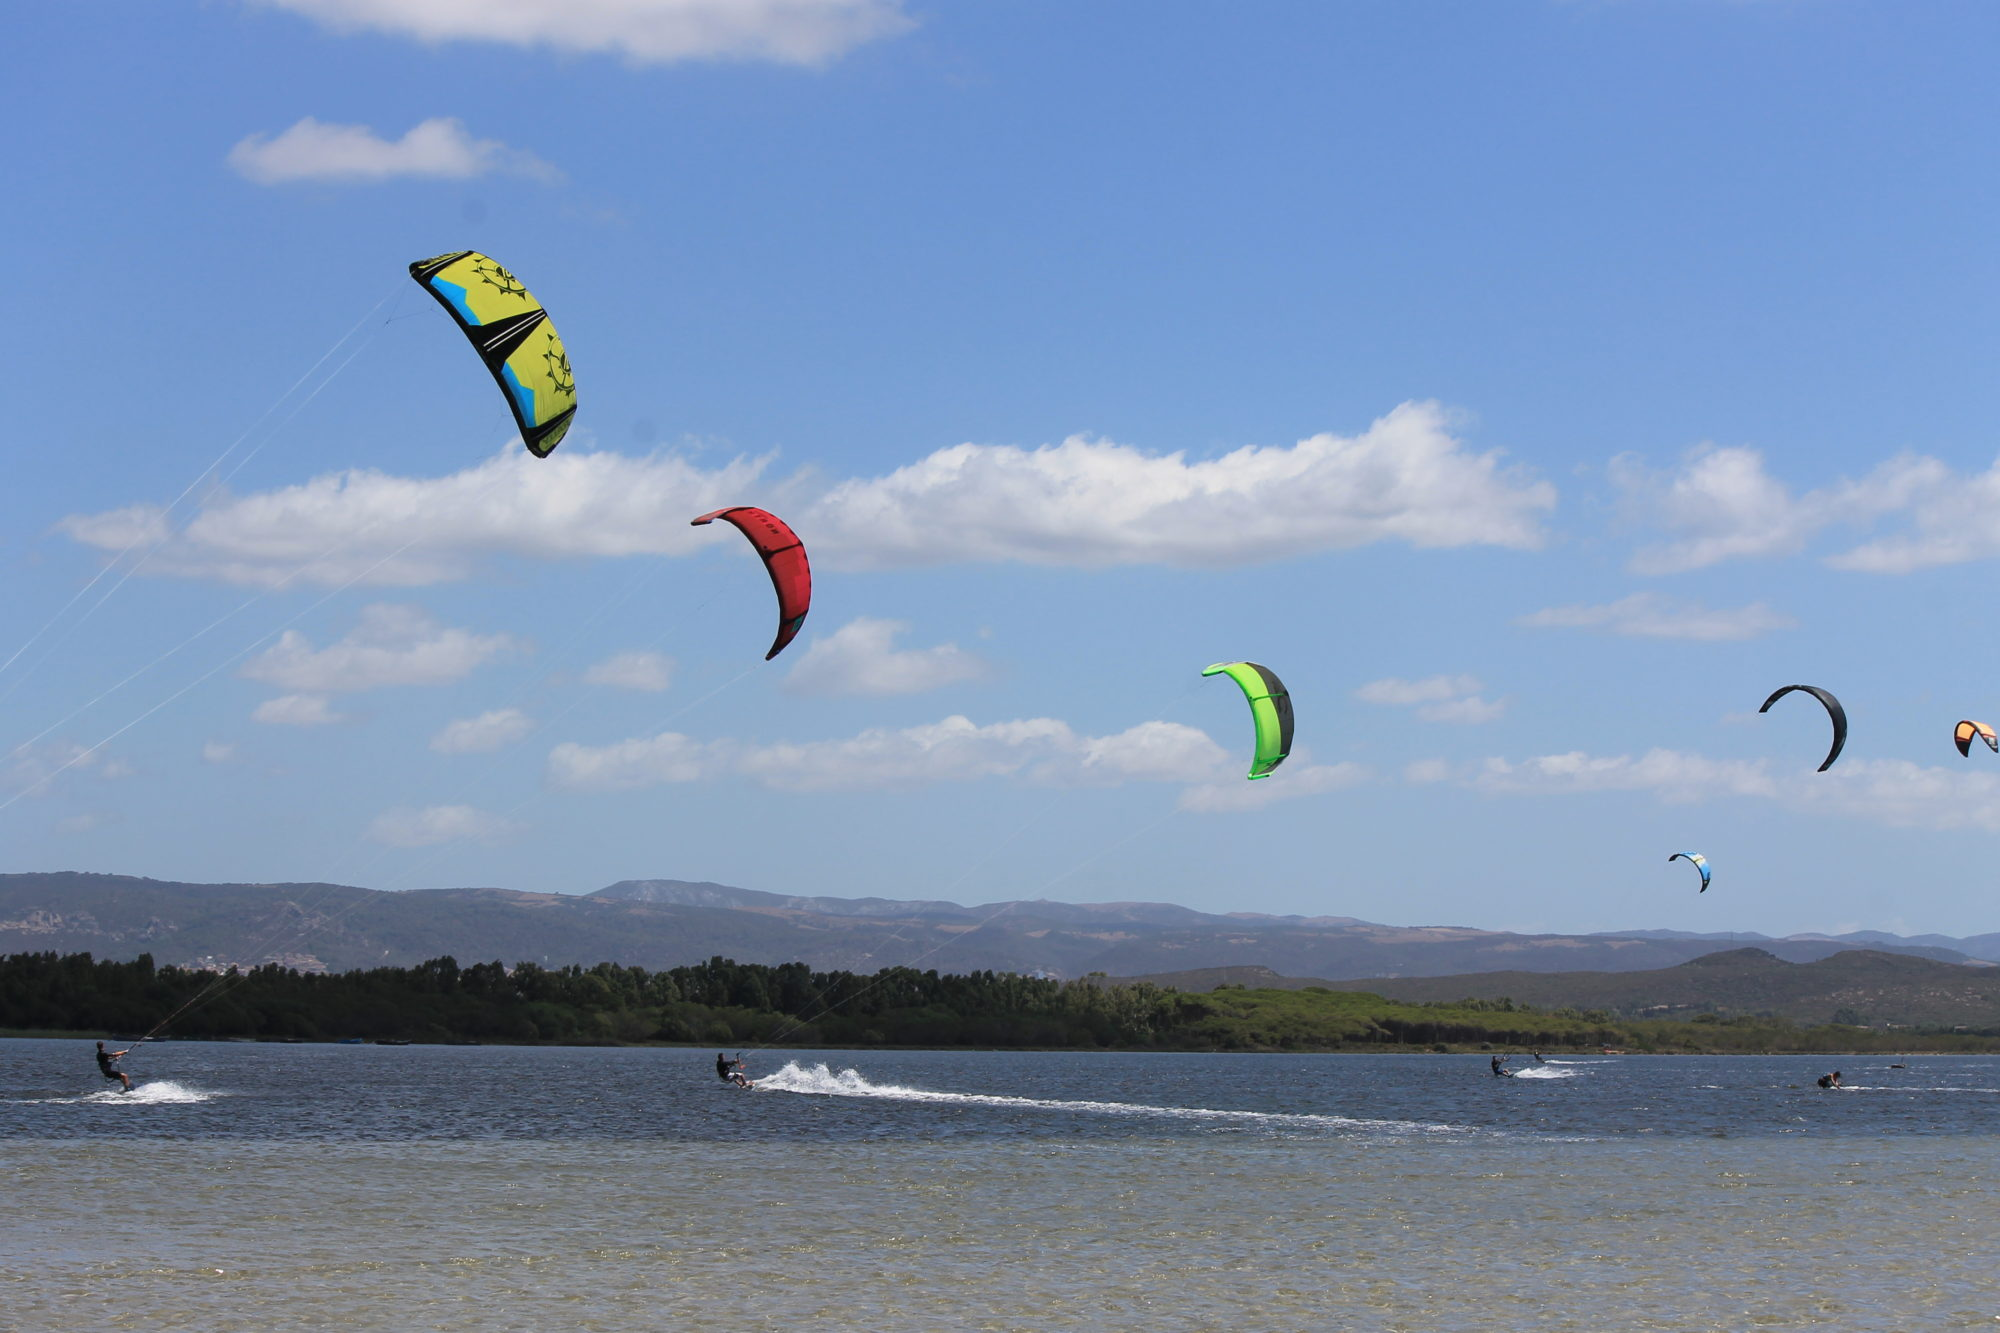 Notices, Rules, Tips, Advices for Kitesurfing in Punta Trettu Sardinia